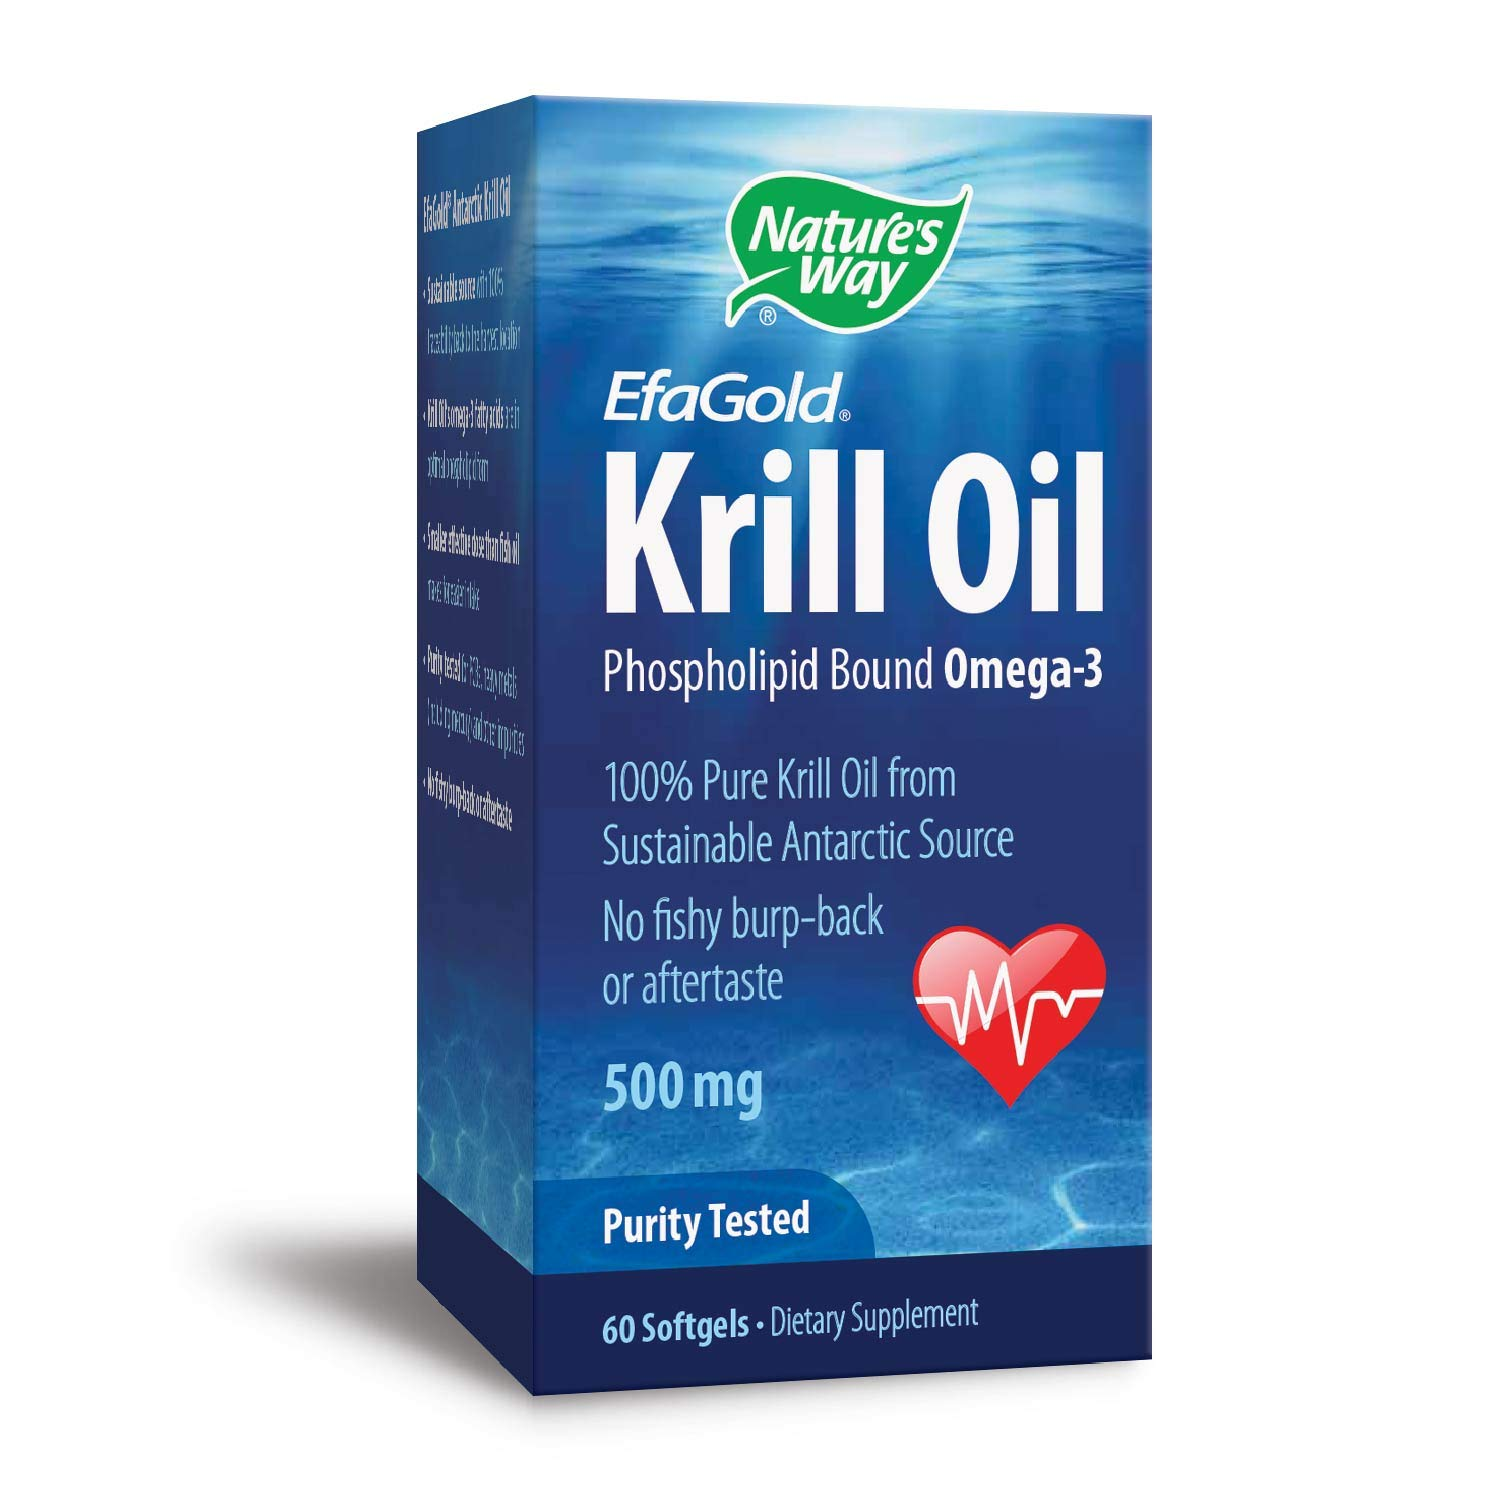 Nature's Way EfaGold Krill Oil Omega-3 100% Pure Krill Oil, No fishy burp-back, 500 mg, 60 Count by Nature's Way